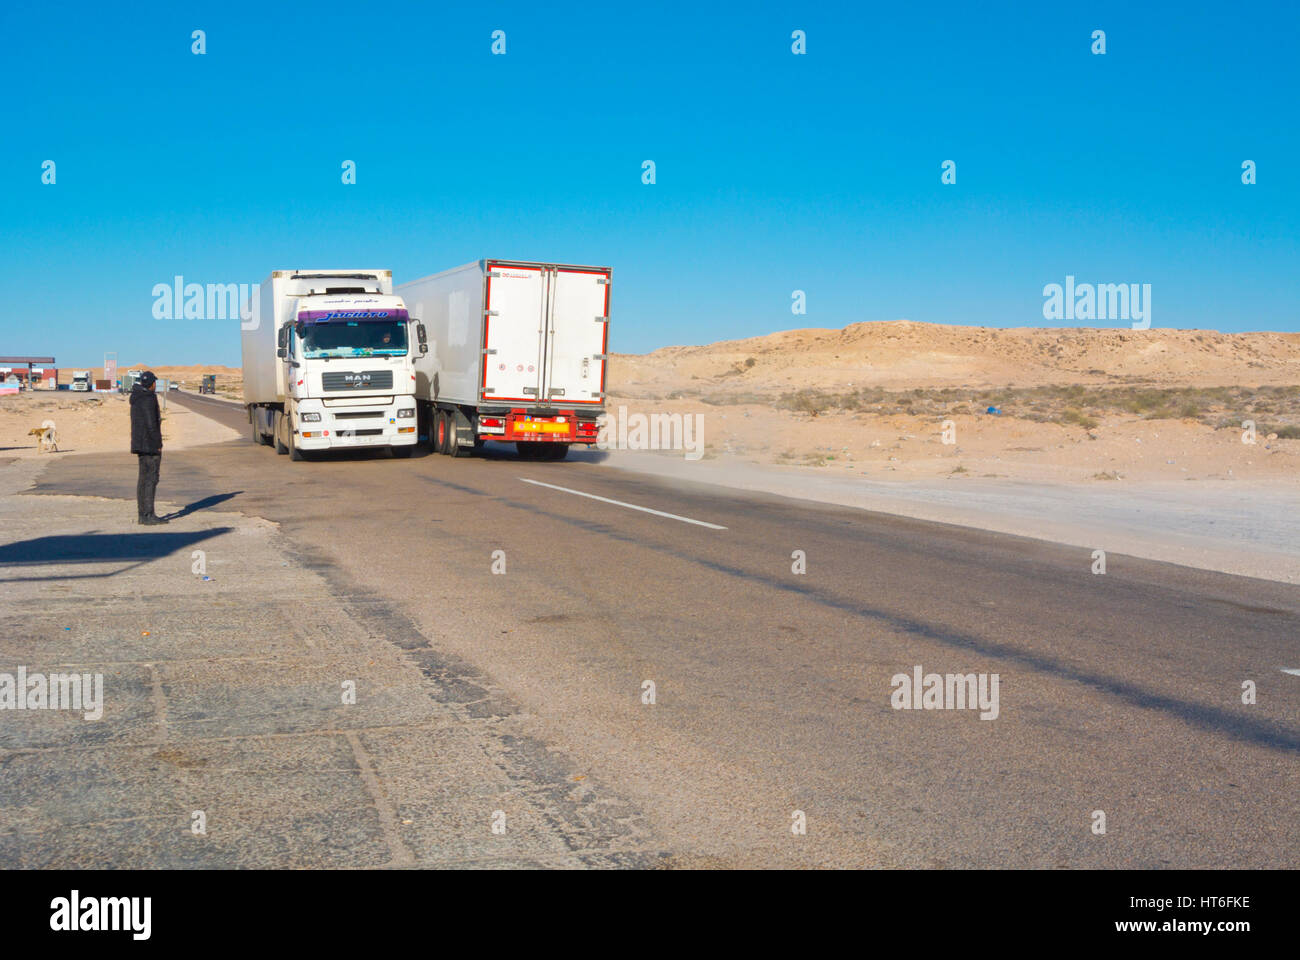 Trucks, N1 road, between Boujdour and Dakhla, Western Sahara, administered by Morocco, Africa - Stock Image